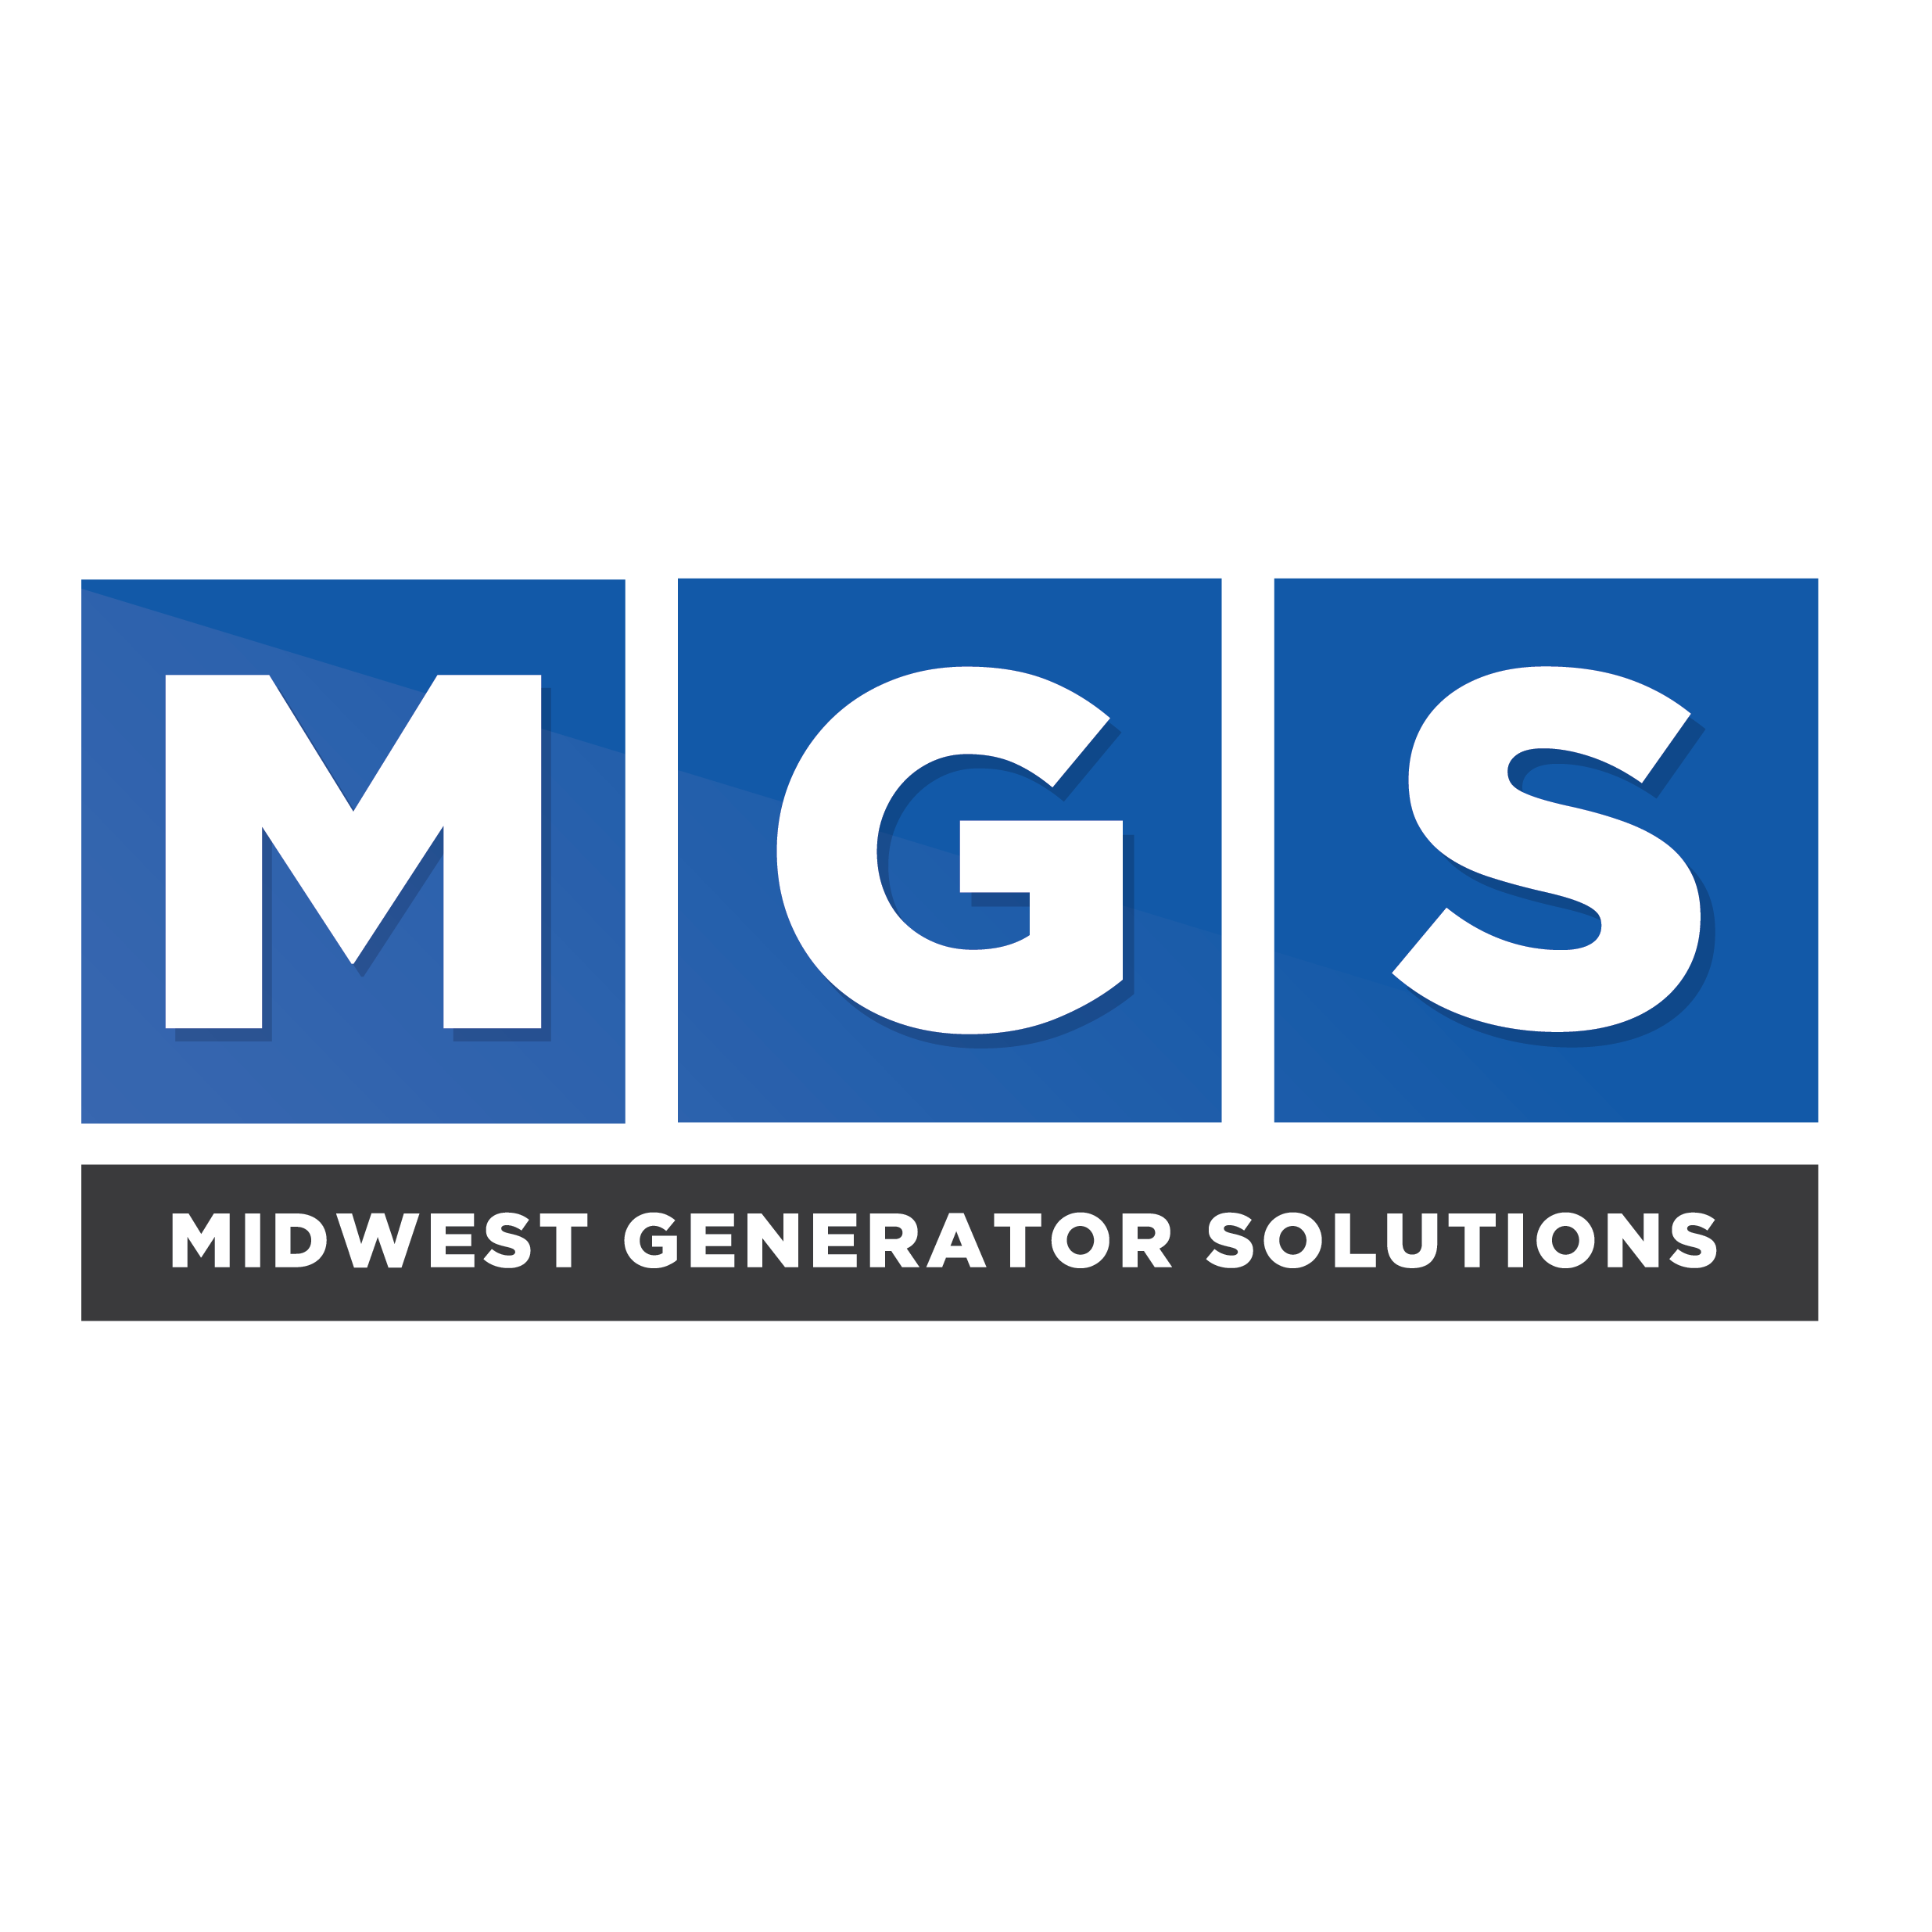 Midwest Generator Solutions